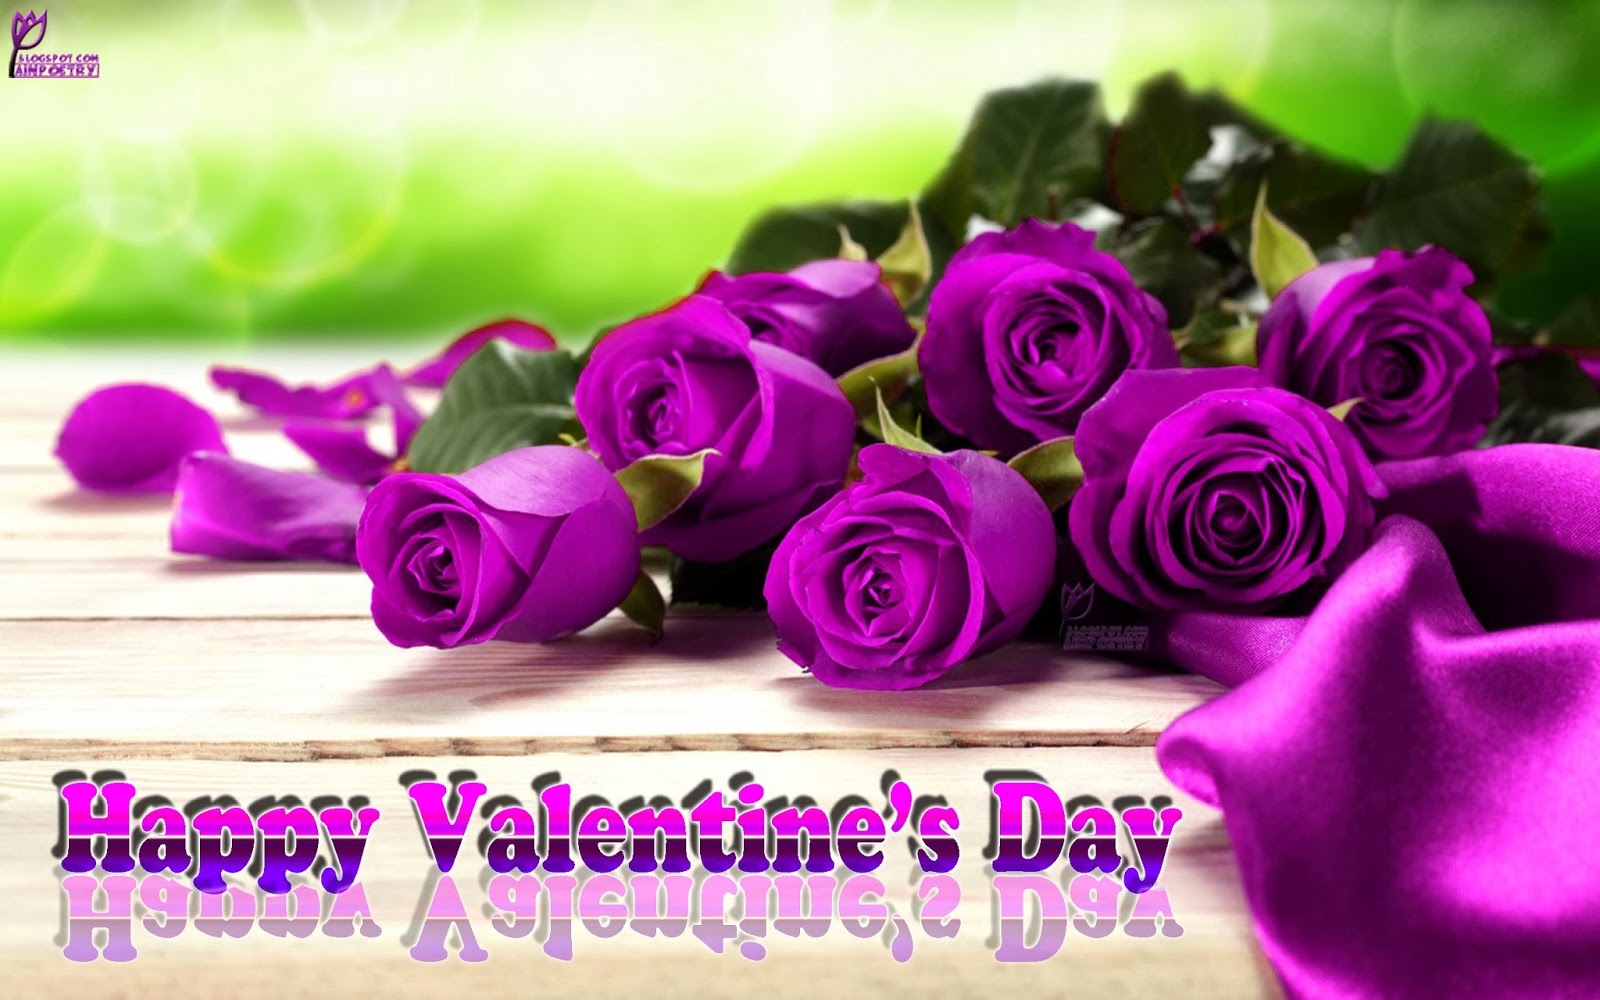 Happy-Valentines-Day-Wishes-Wallpaper-Image-With-Pink-Flowers-Image-HD-Wide